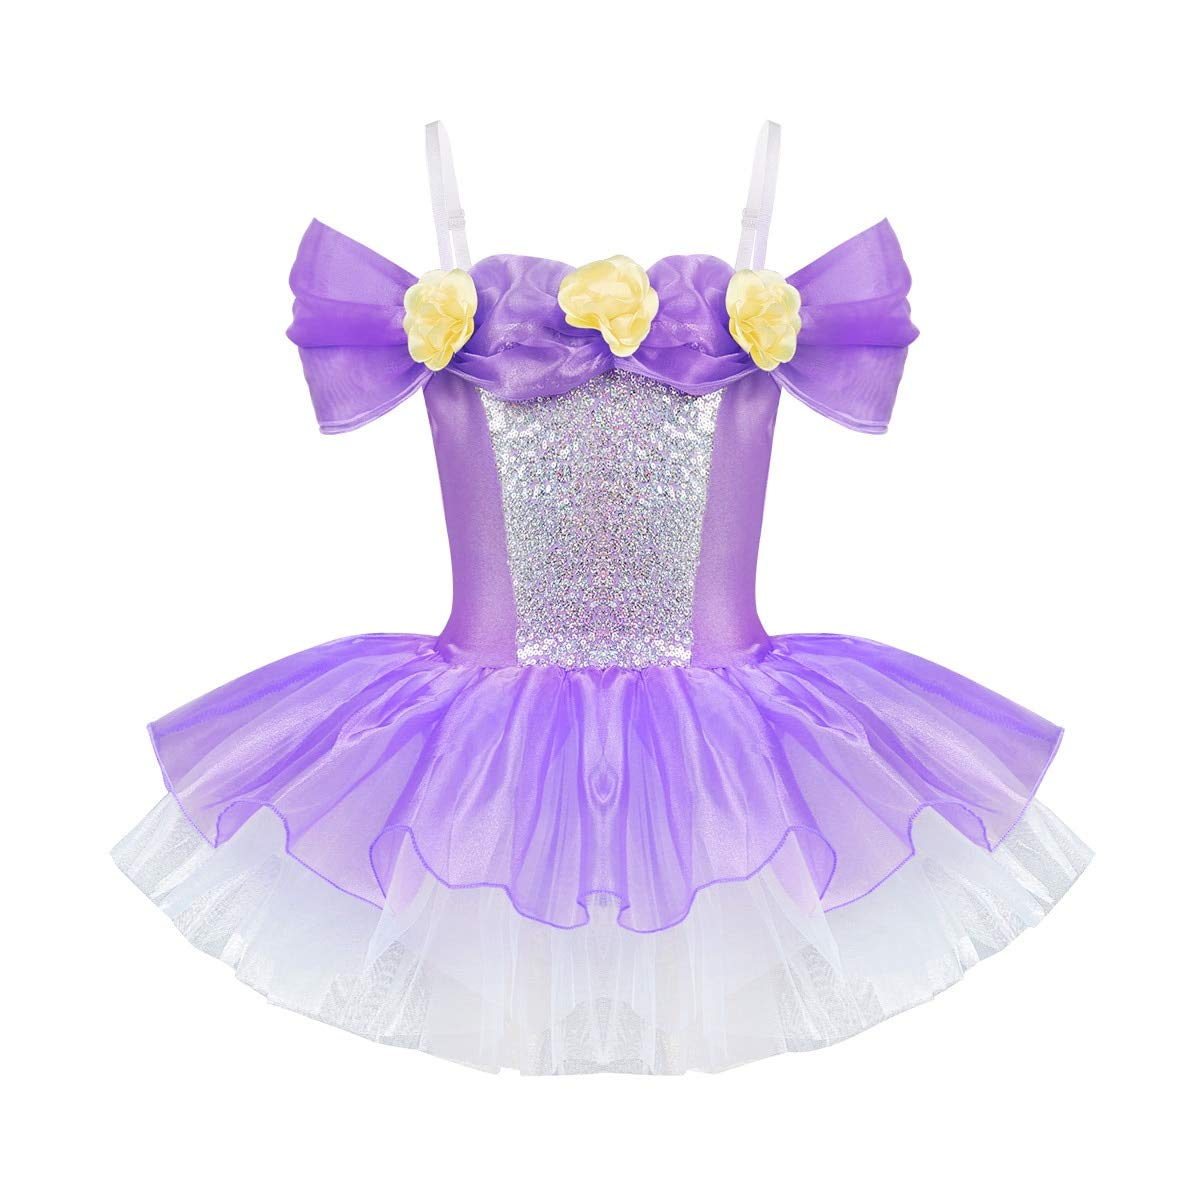 Mink Monk Girls Ballet Leotard Gymnastic Dress Shoulder Straps Off Shoulder 3D Flowers Tutu Ballet Dancewear Gymnastics Leotard Dress